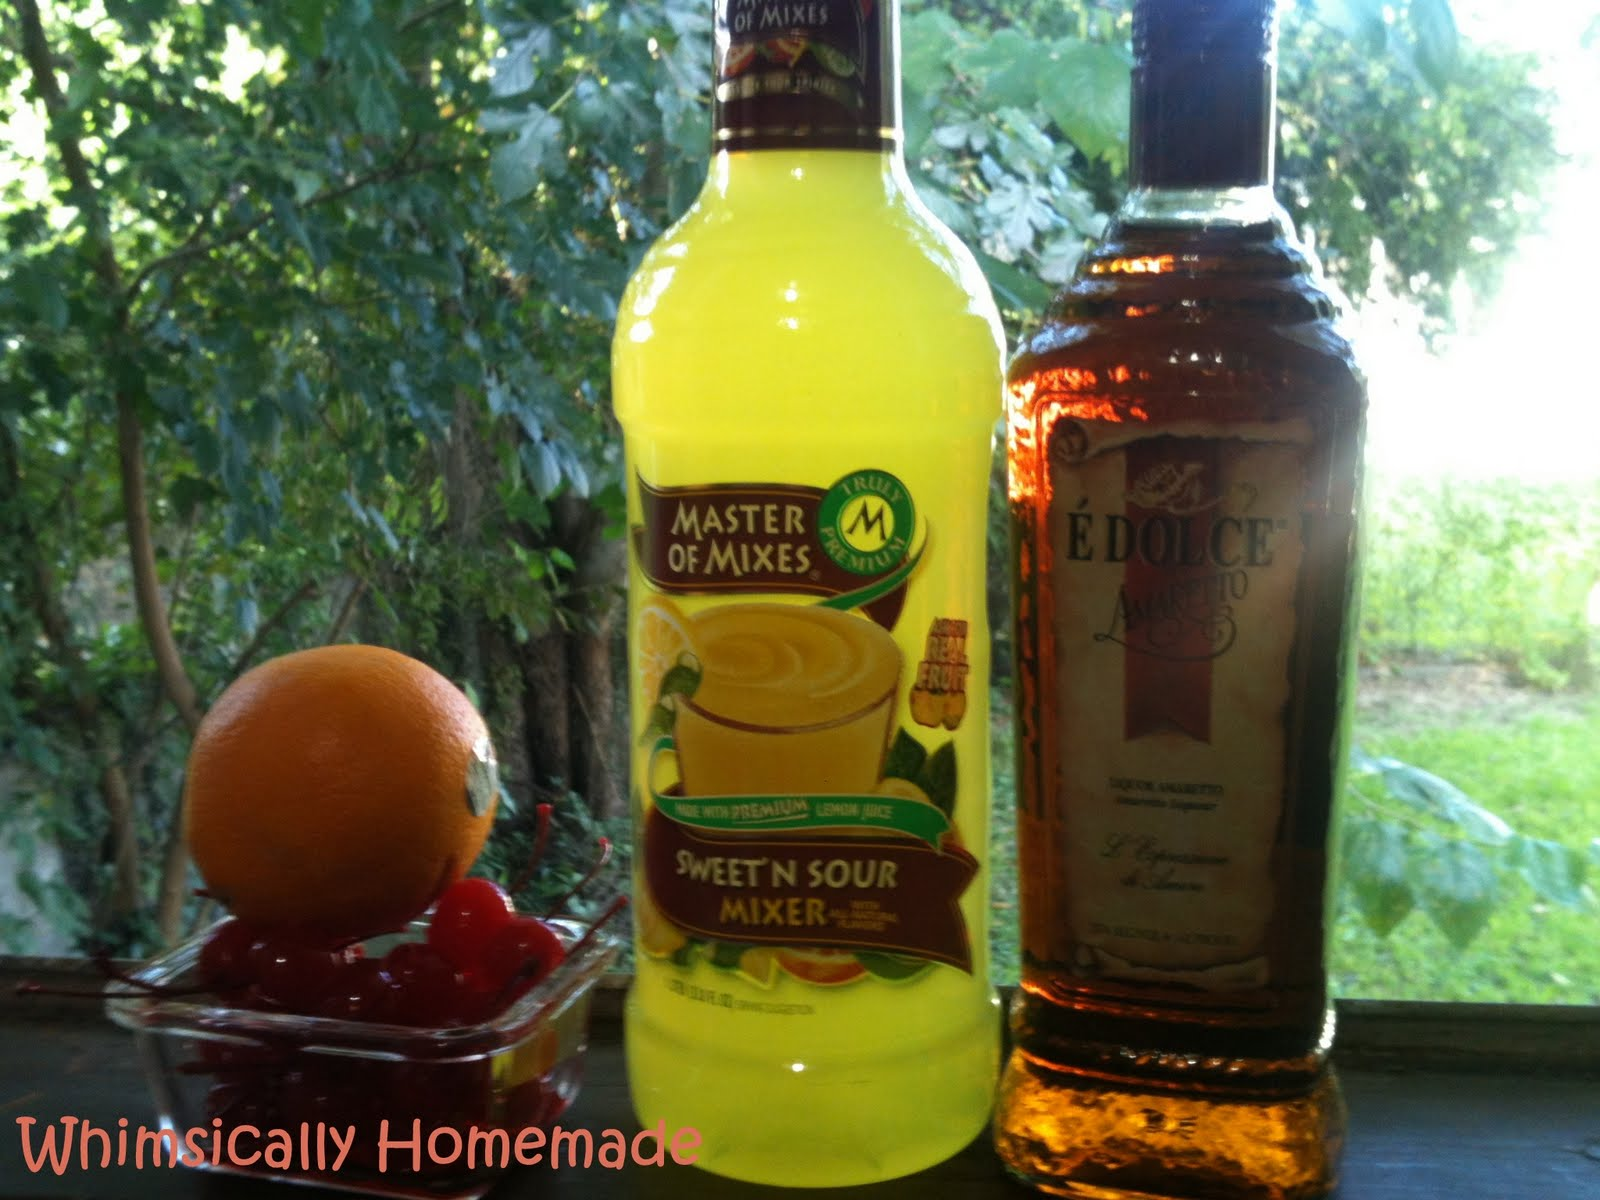 Whimsically Homemade: Thirsty Thursday - Amaretto Sour